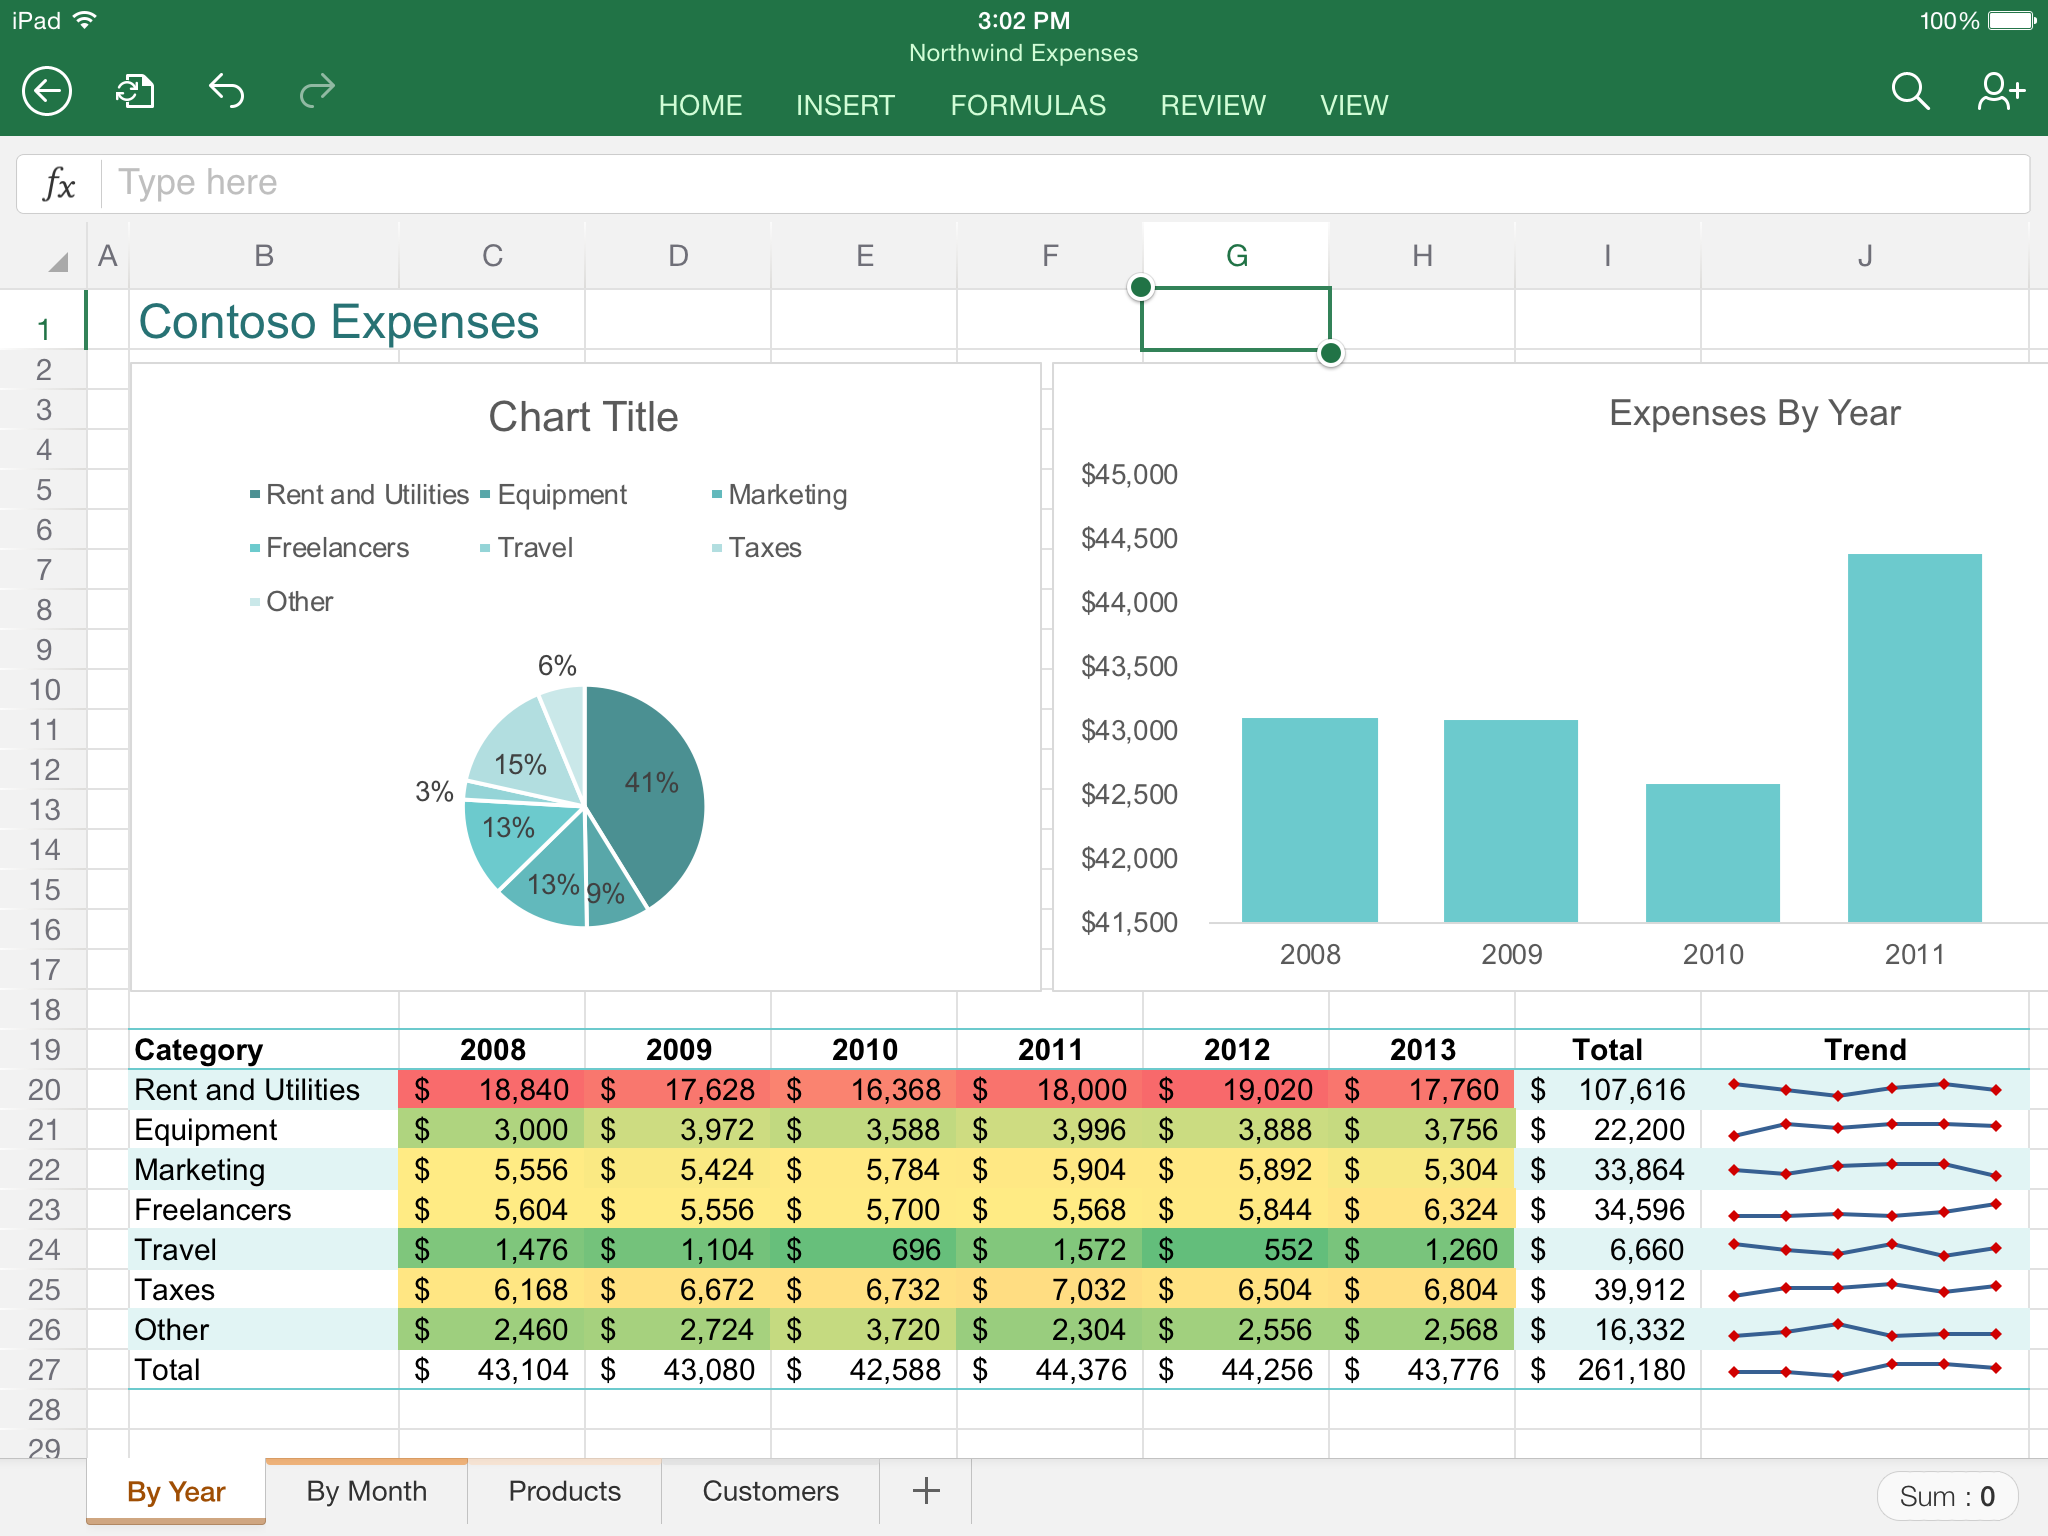 Ediblewildsus  Mesmerizing App Highlight Excel  Mobile Digital Now With Magnificent Excel In Action With Endearing Adding And Subtracting Dates In Excel Also In Excel Vba In Addition Excel Vba Like Operator And How To Drop Down Excel As Well As Excel Merging Columns Additionally Tracking Expenses In Excel From Youstonybrookedu With Ediblewildsus  Magnificent App Highlight Excel  Mobile Digital Now With Endearing Excel In Action And Mesmerizing Adding And Subtracting Dates In Excel Also In Excel Vba In Addition Excel Vba Like Operator From Youstonybrookedu